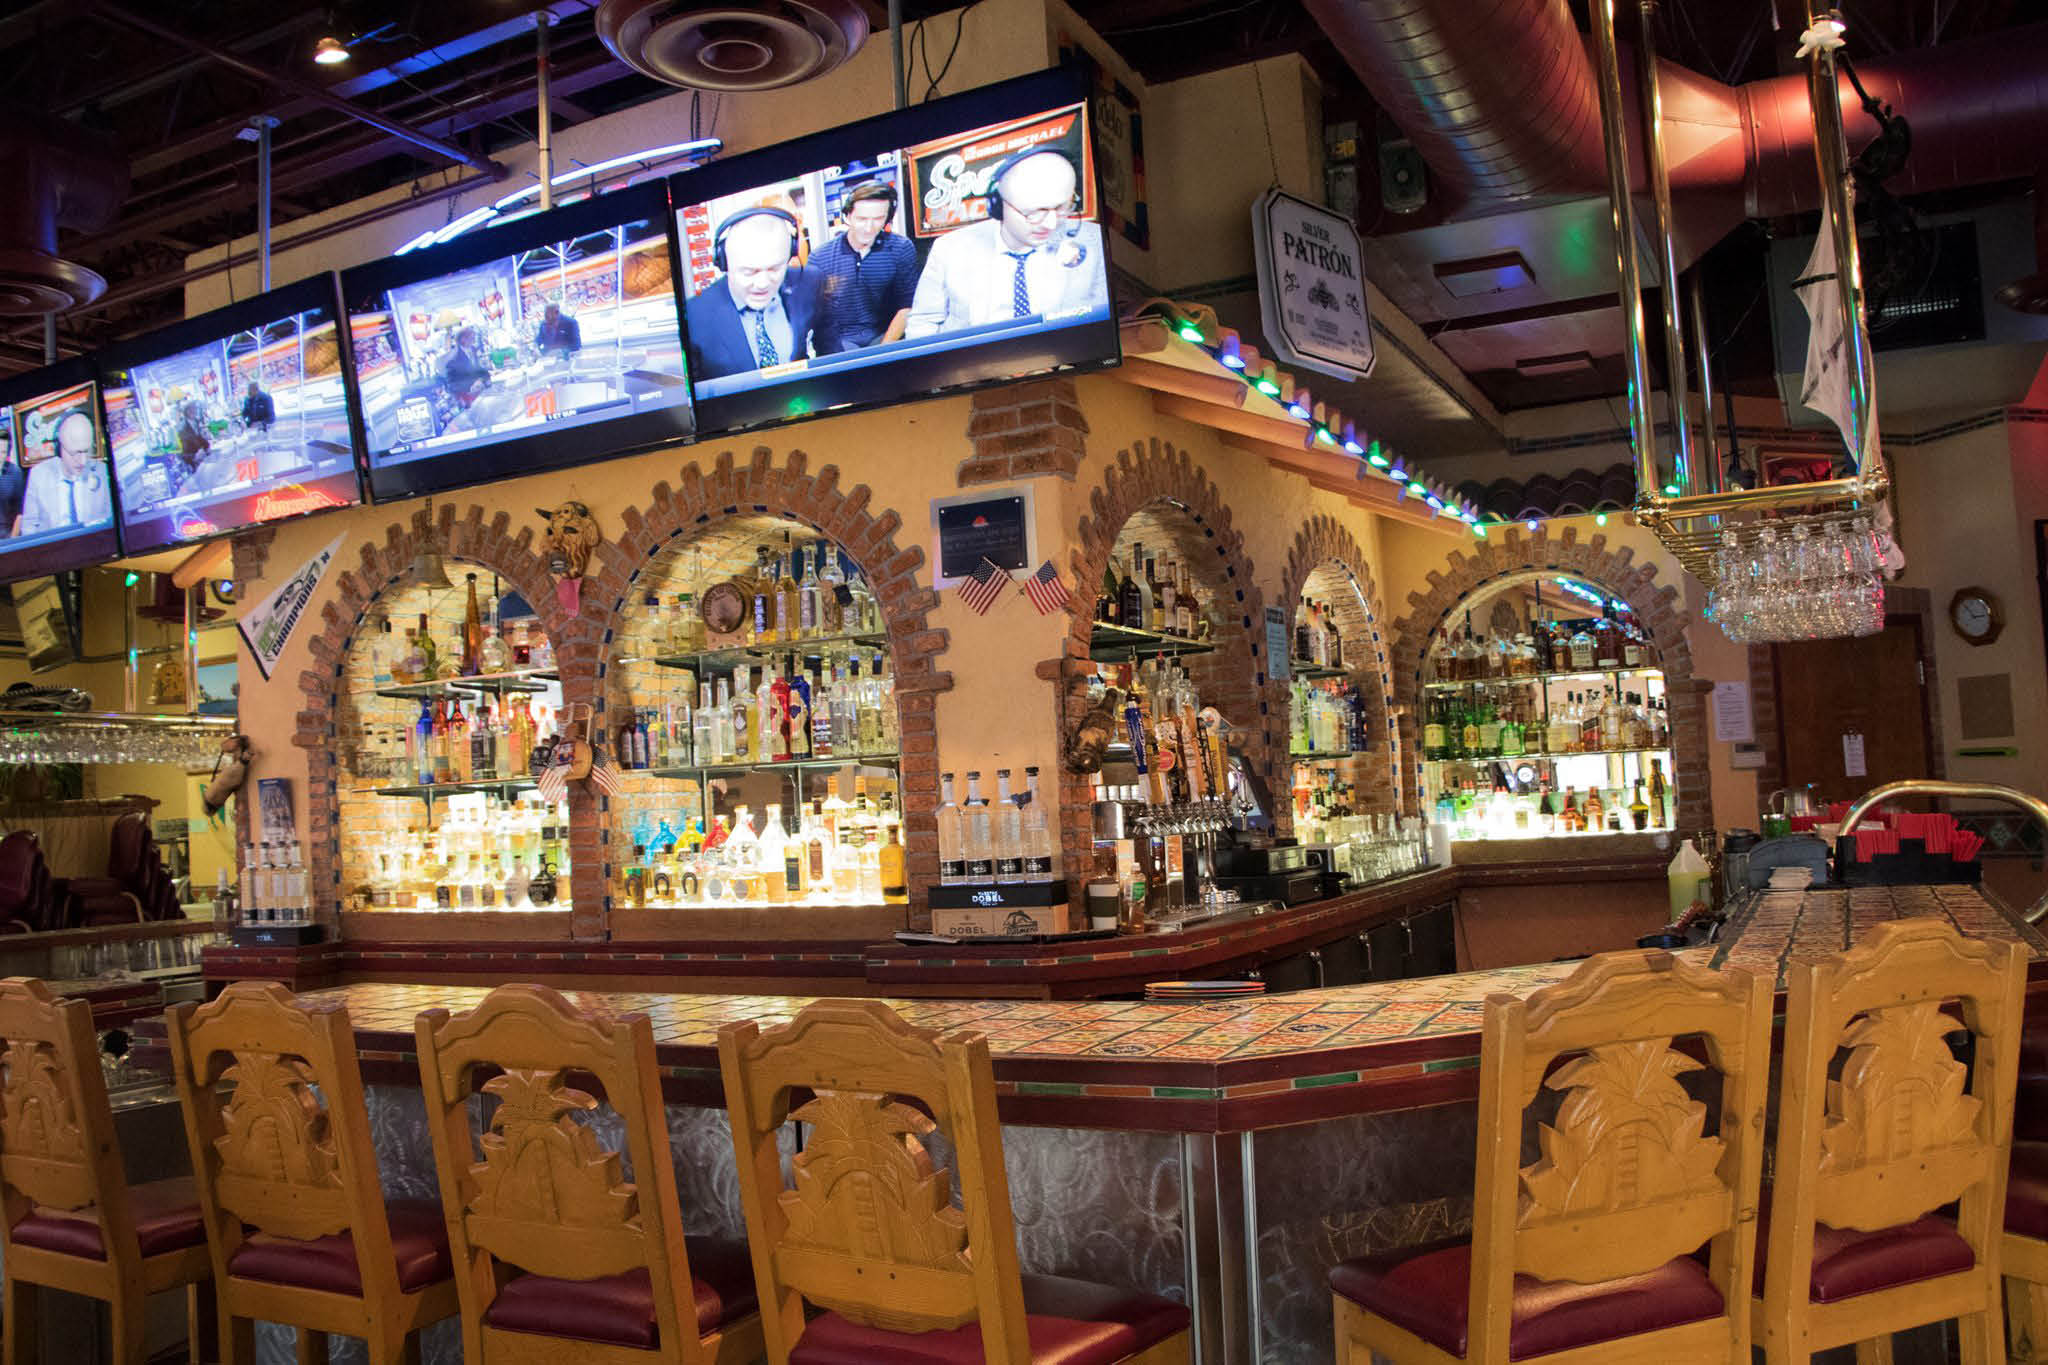 Inside La Palmera Family Mexican Restaurant & Lounge in Everett, WA and Mill Creek, WA - authentic Mexican food